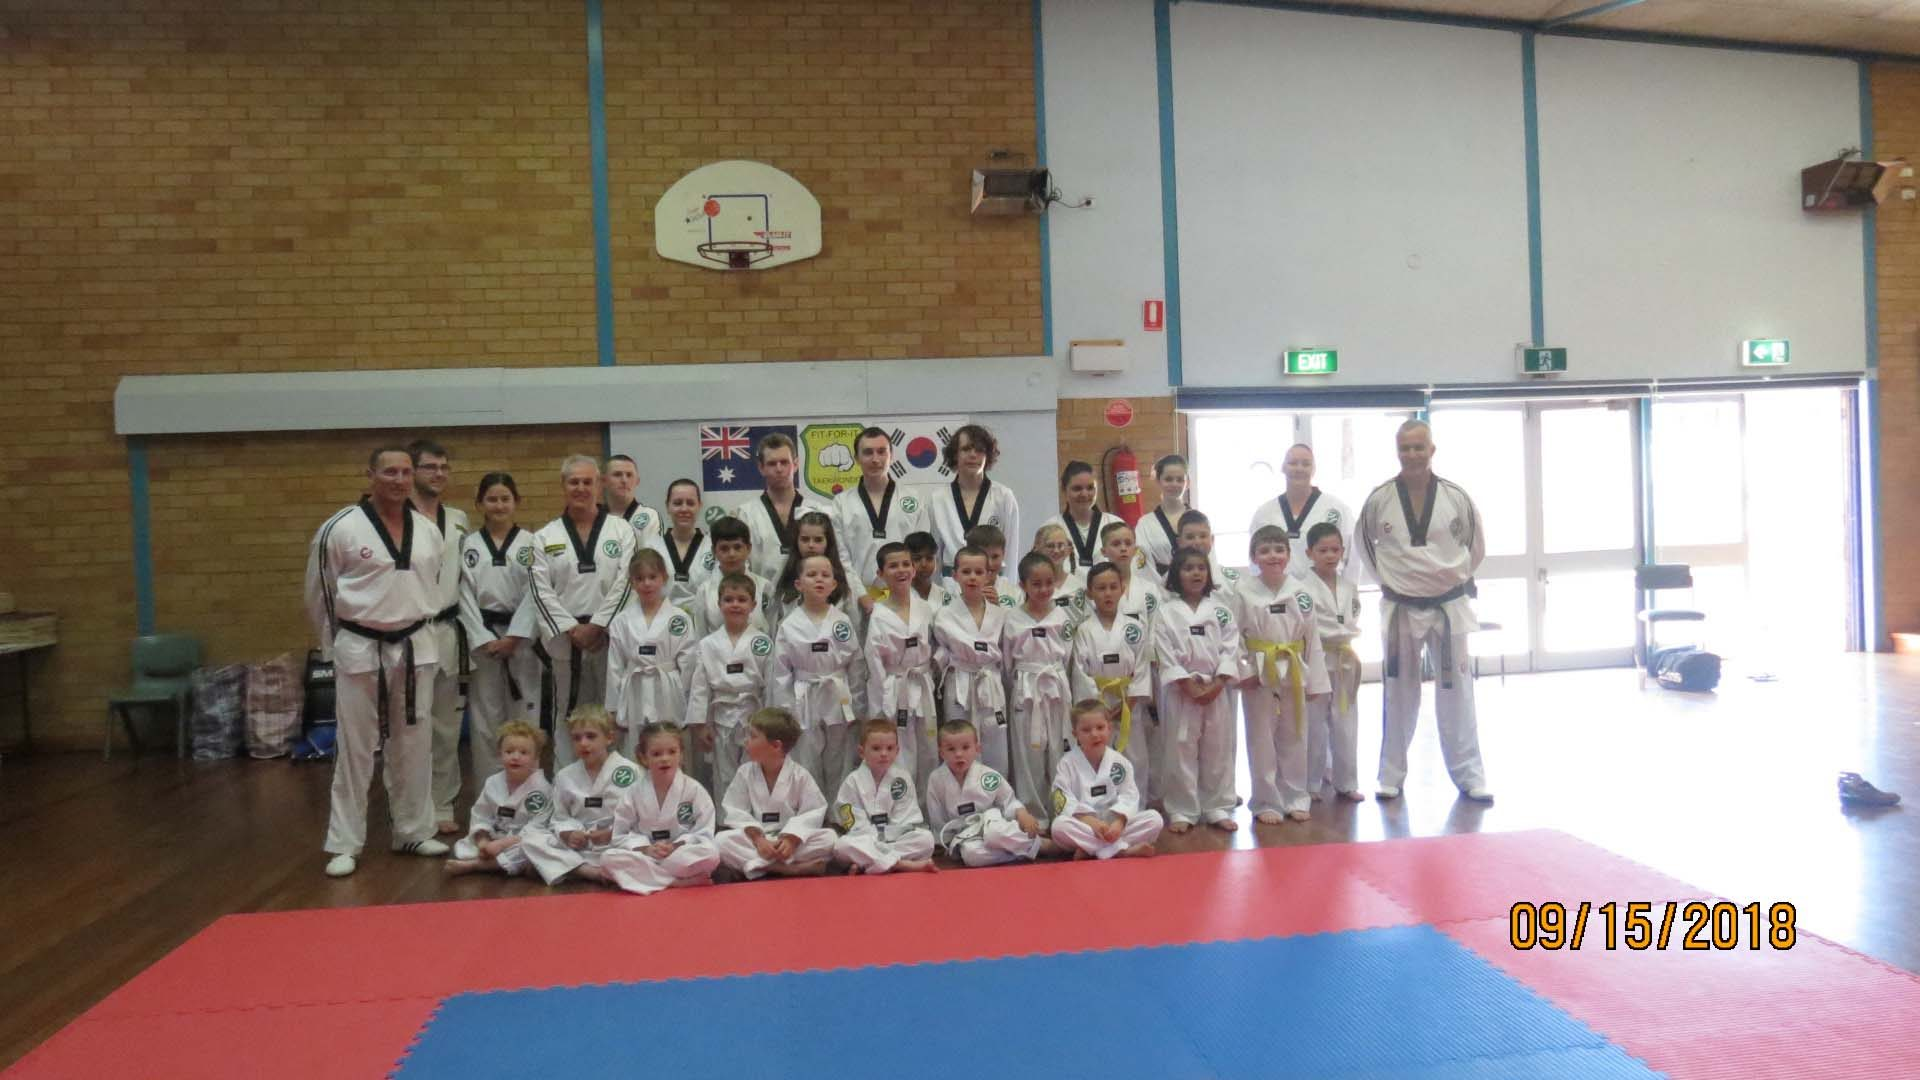 A large class of taekwondo students at Tamworth Martial Arts, ready to begin their session.